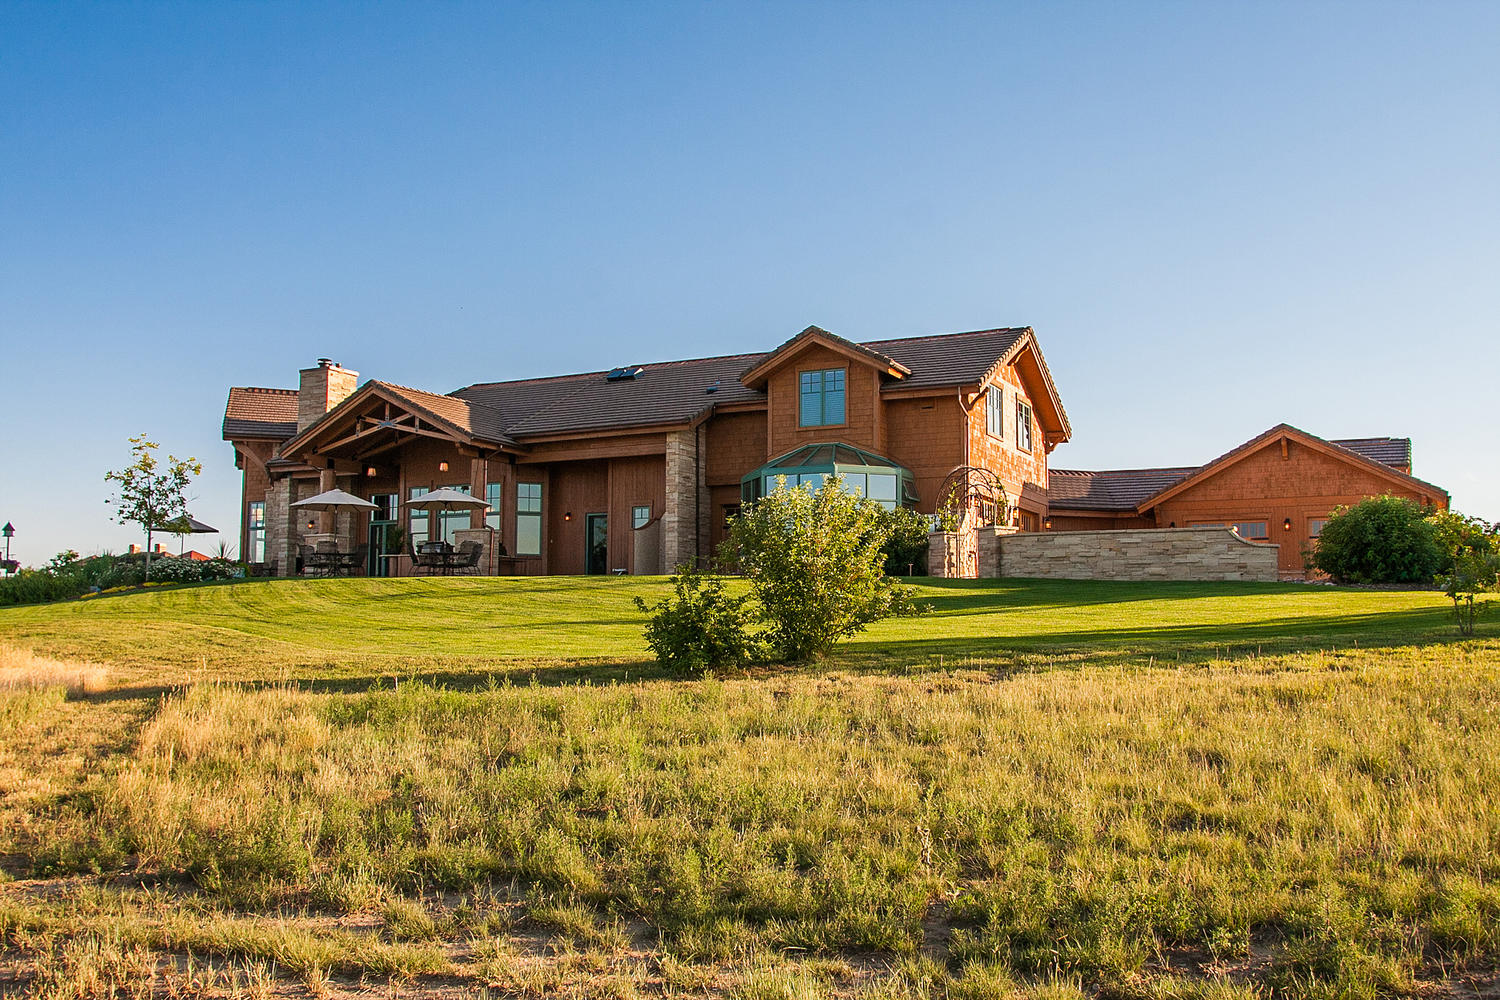 Additional photo for property listing at Balance Of Light, Landscape And Sky 5500 Tirranna Ct Fort Collins, Colorado 80524 United States